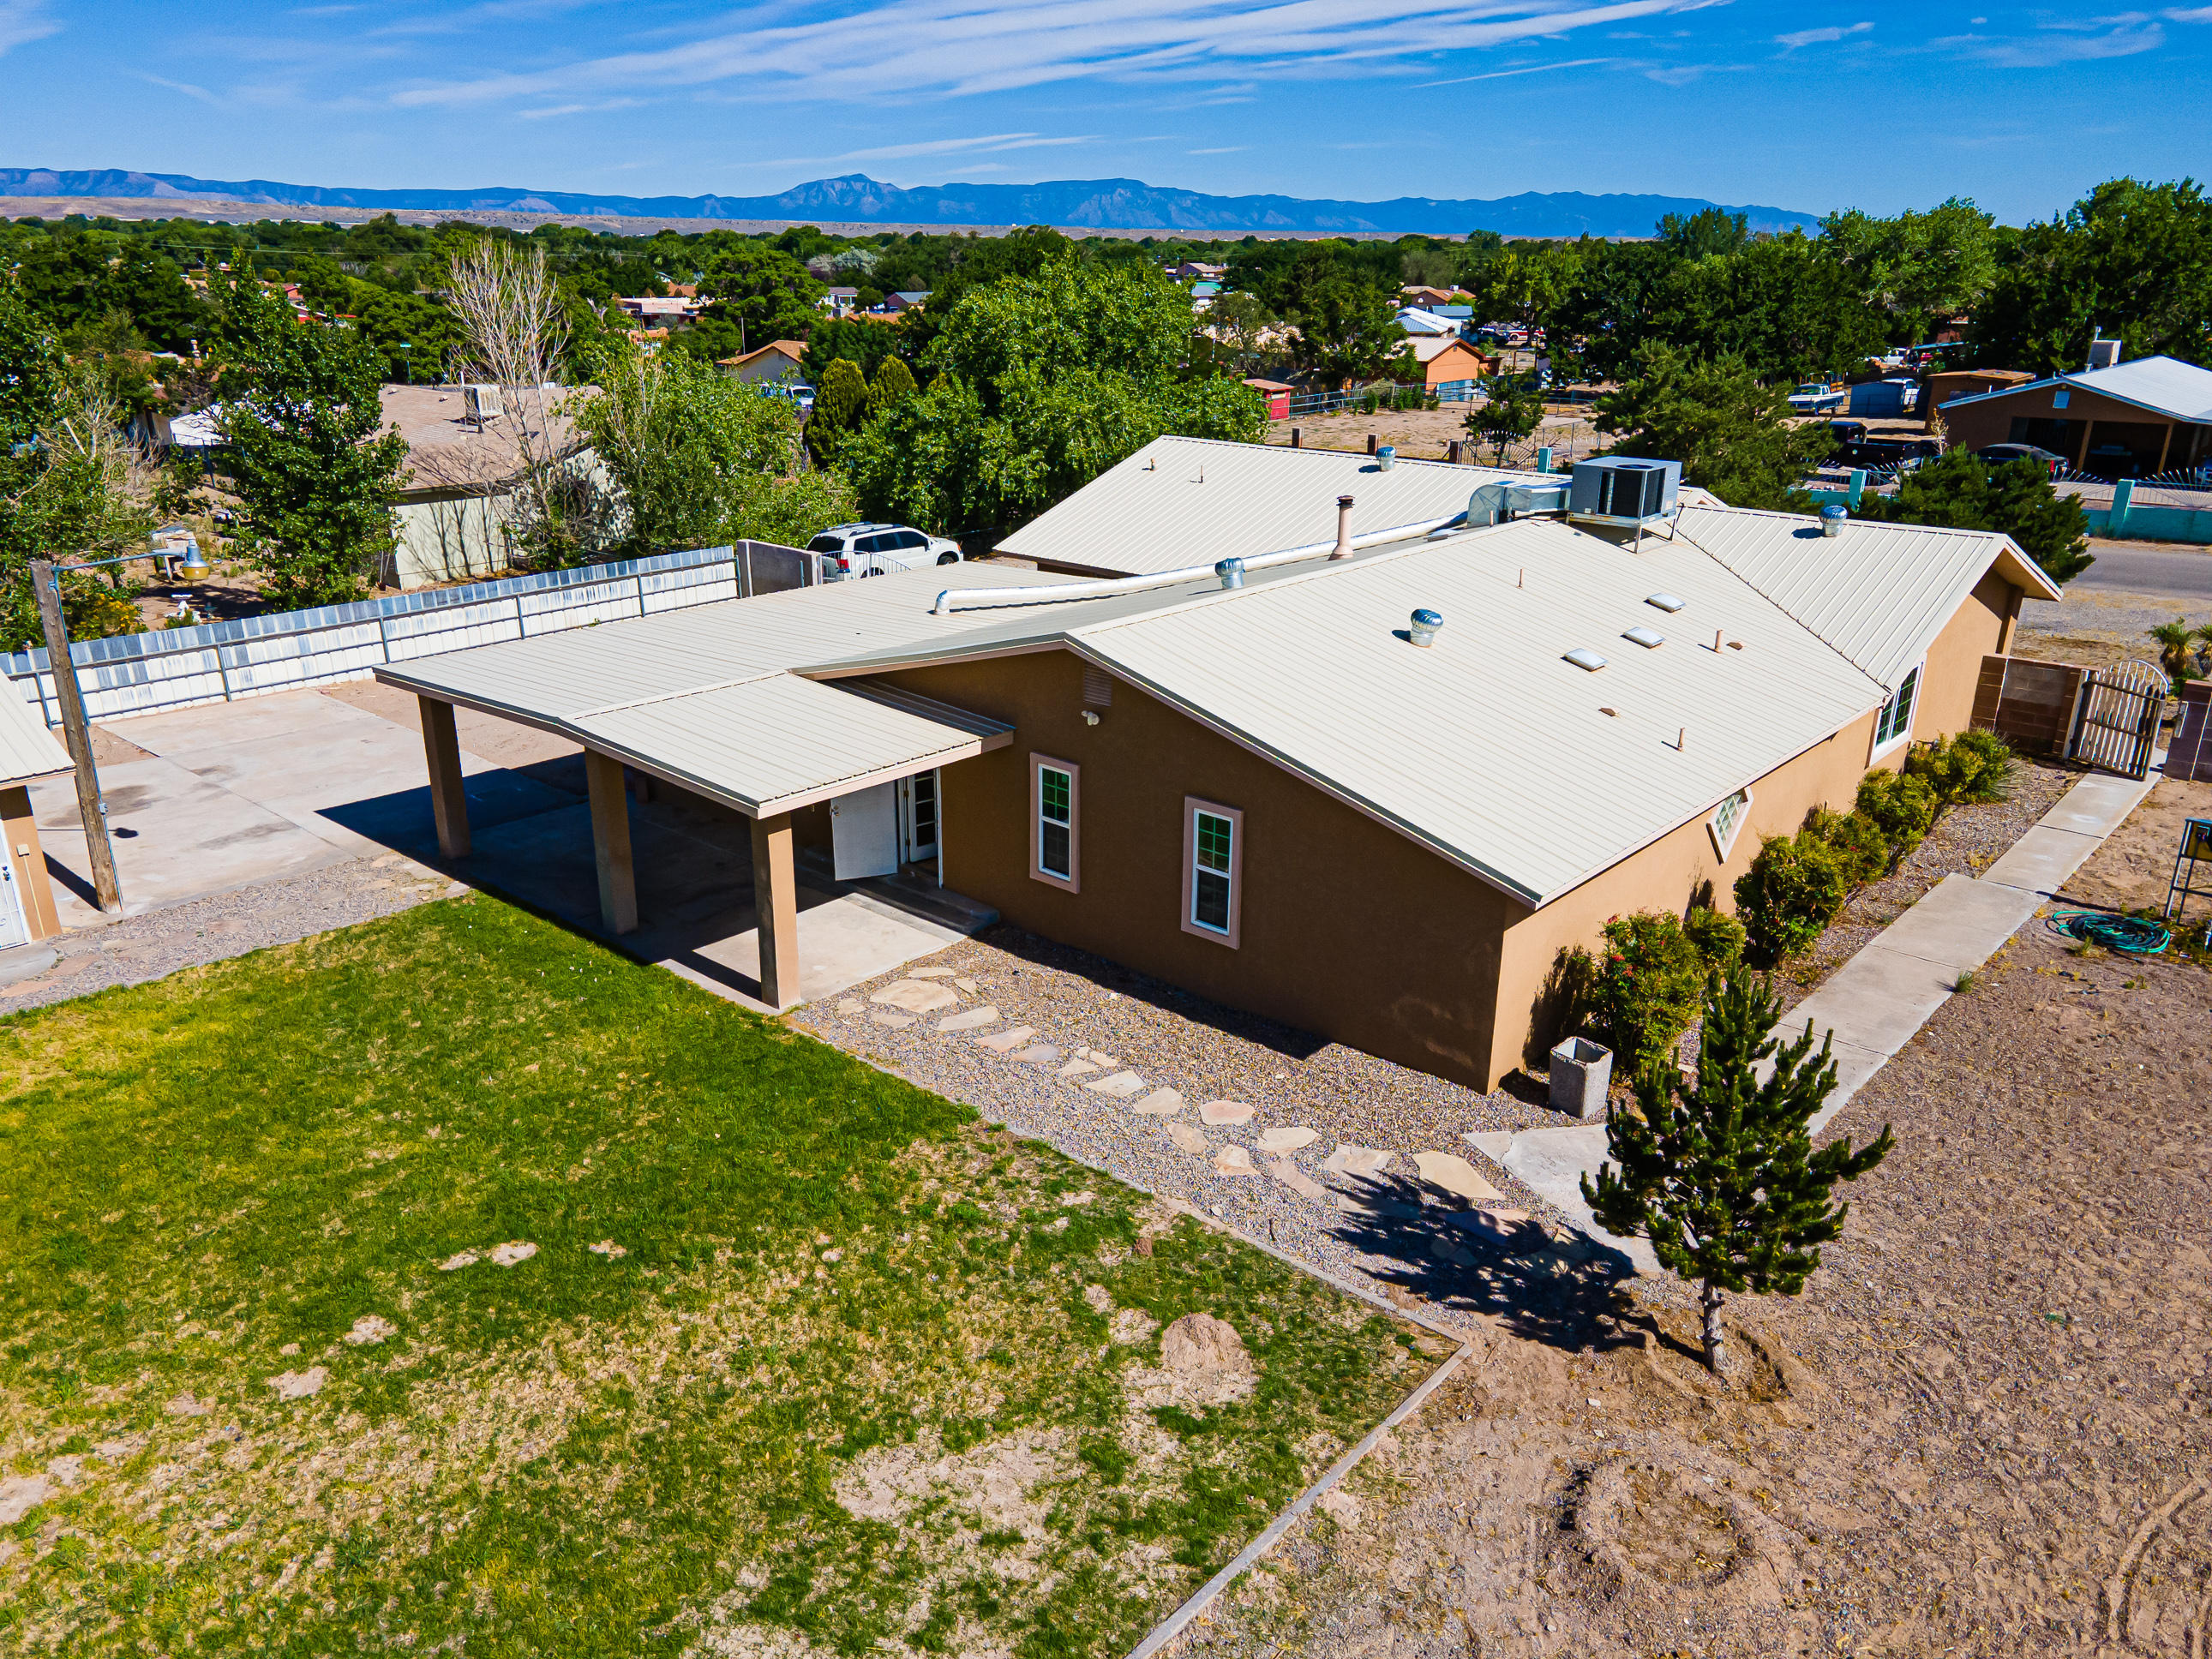 The home that you have been looking for is finally on the market. This single story beauty sits on 1/2 Acre lot with side/backyard access with 2 car detached garage with air conditioner (Evap). The home features newer metal roof (2018), refrigerated air (2018), updated windows (2018), synthetic stucco (2018), new paint, 3 Bedroom, 3 Living Areas or make the 3rd living area into the 4th Bedroom/Office/Bonus room. Home also features, updated light fixtures, lots of cabinet space and open kitchen with formal dining area. Kitchen comes with Stainless steel Appliances, Tile and laminate floors throughout and no carpet. Large master bedroom with garden tub and separate shower and Large walk-in closet. As a bonus, you have a front and back covered porch and landscaping that is easy to maintain.